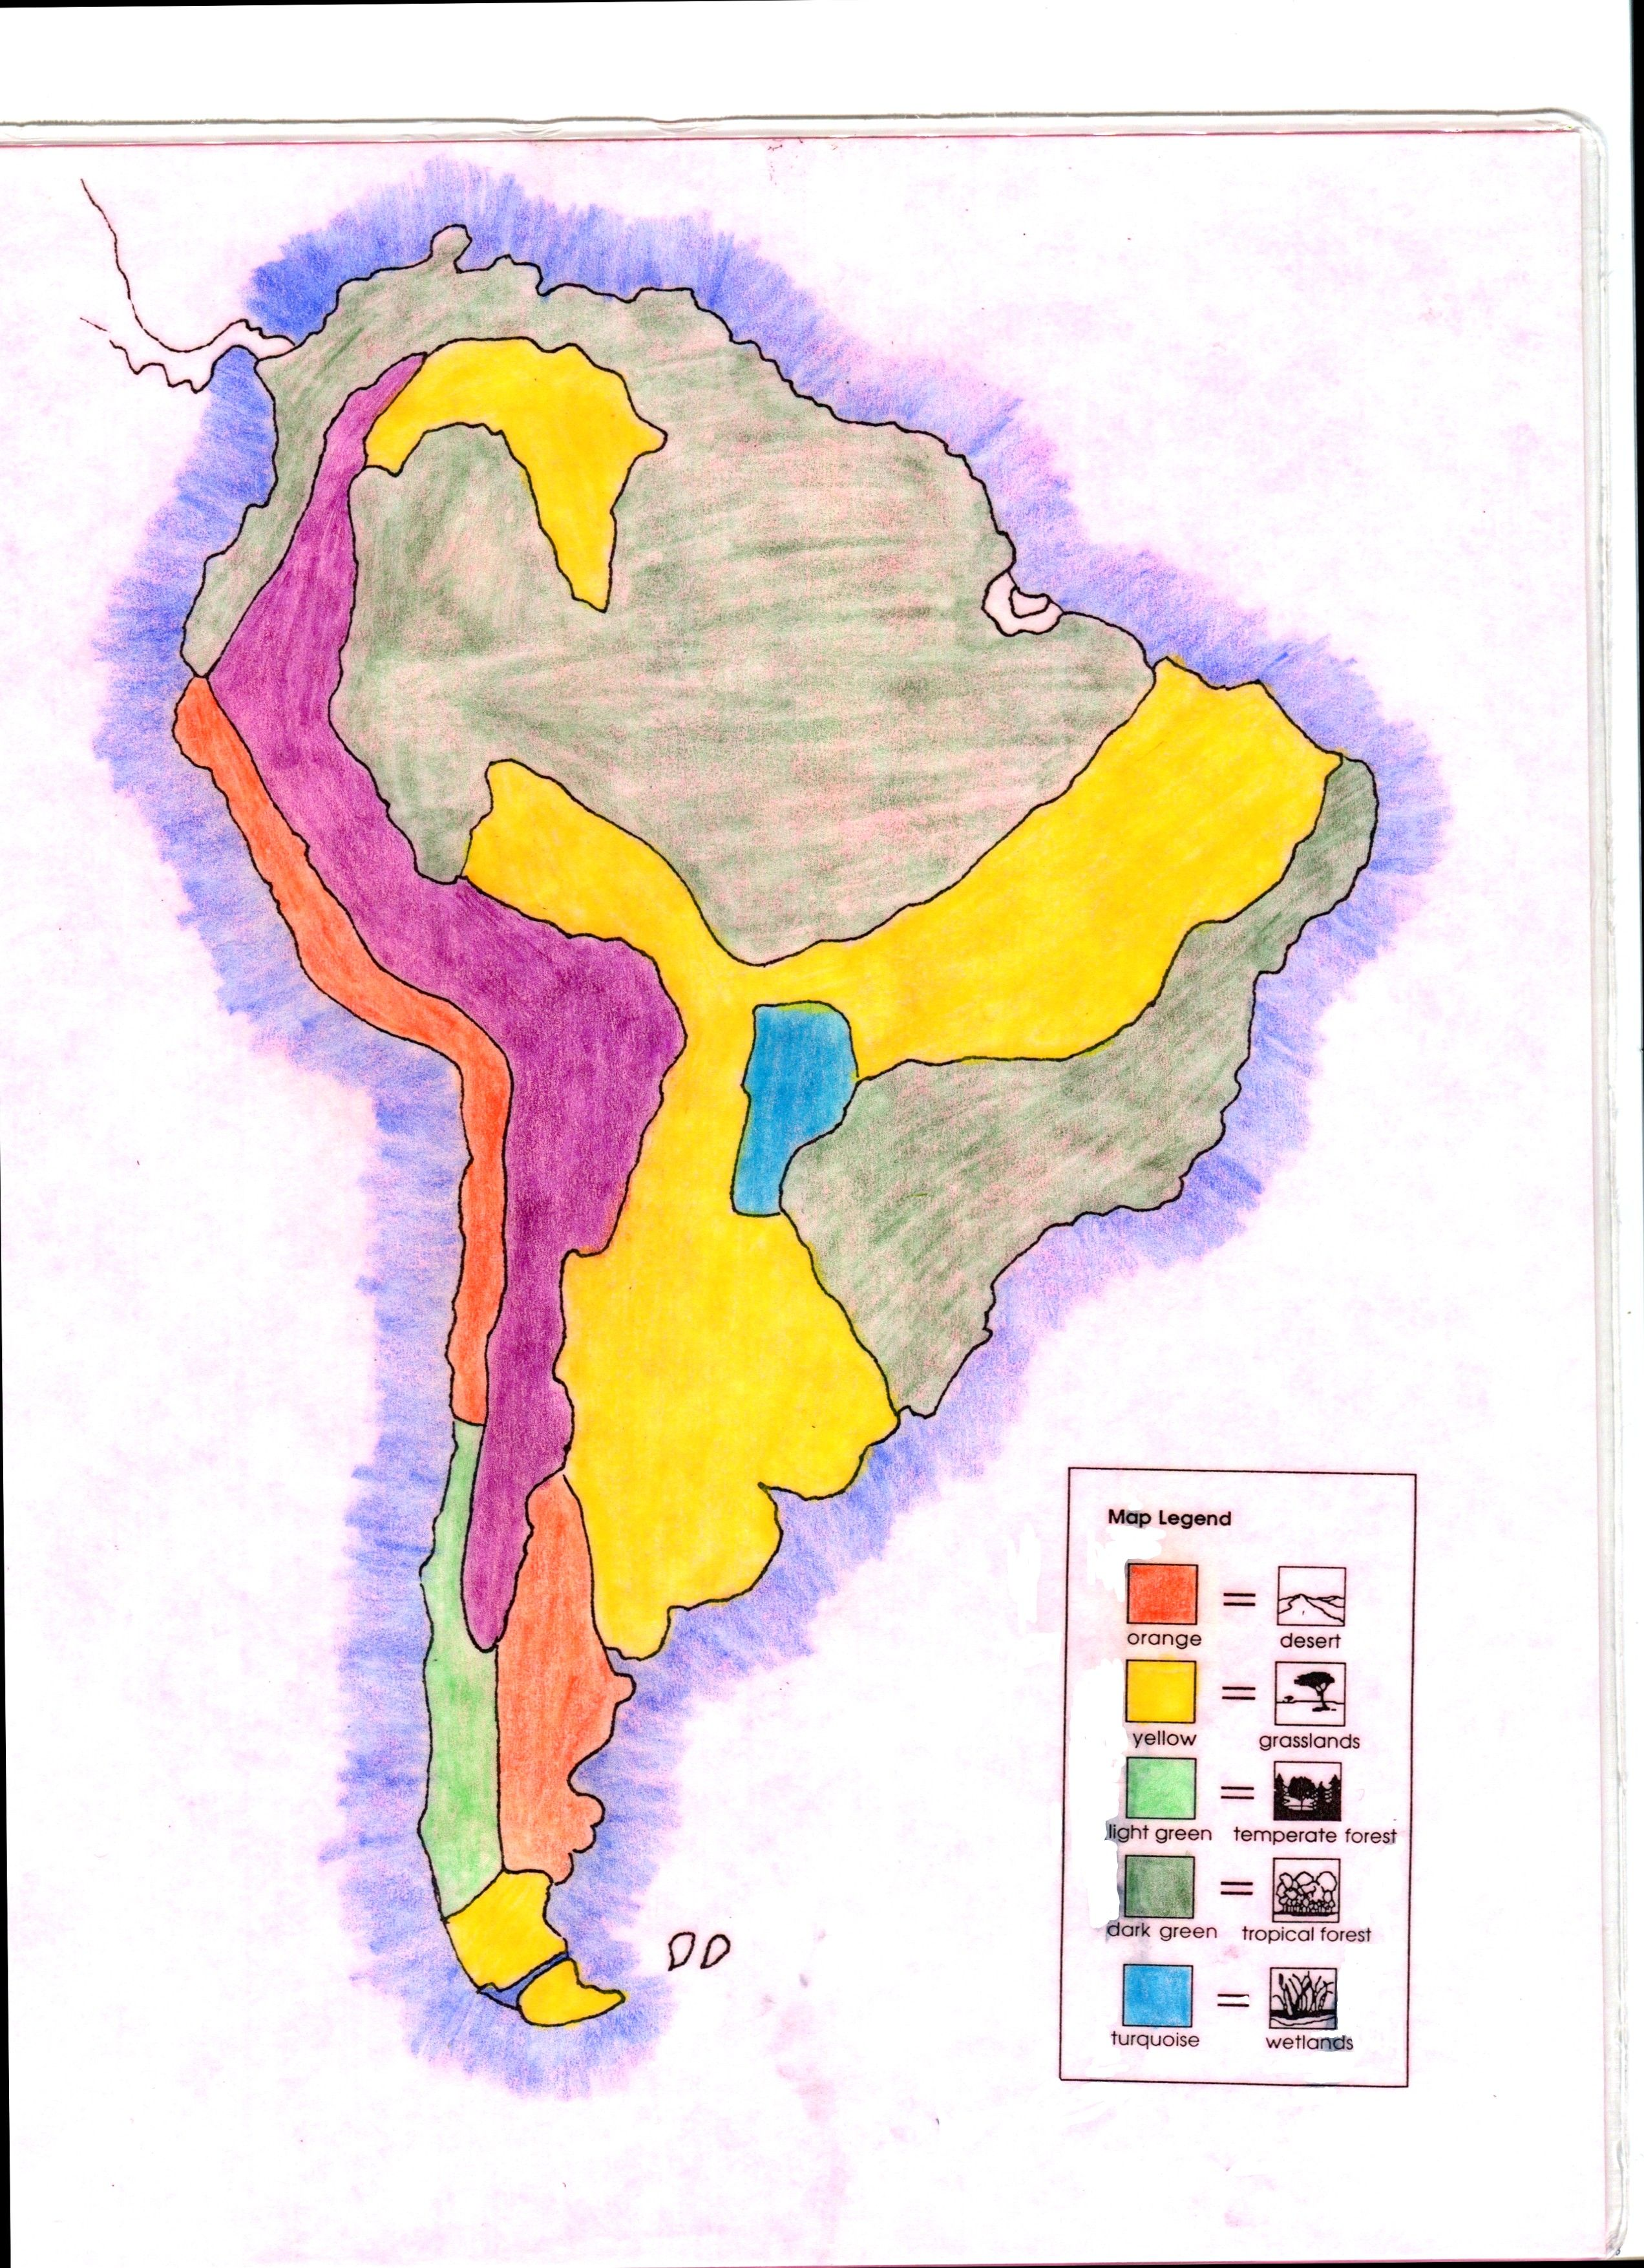 Science biome of south america montessori south america science biome of south america gumiabroncs Images